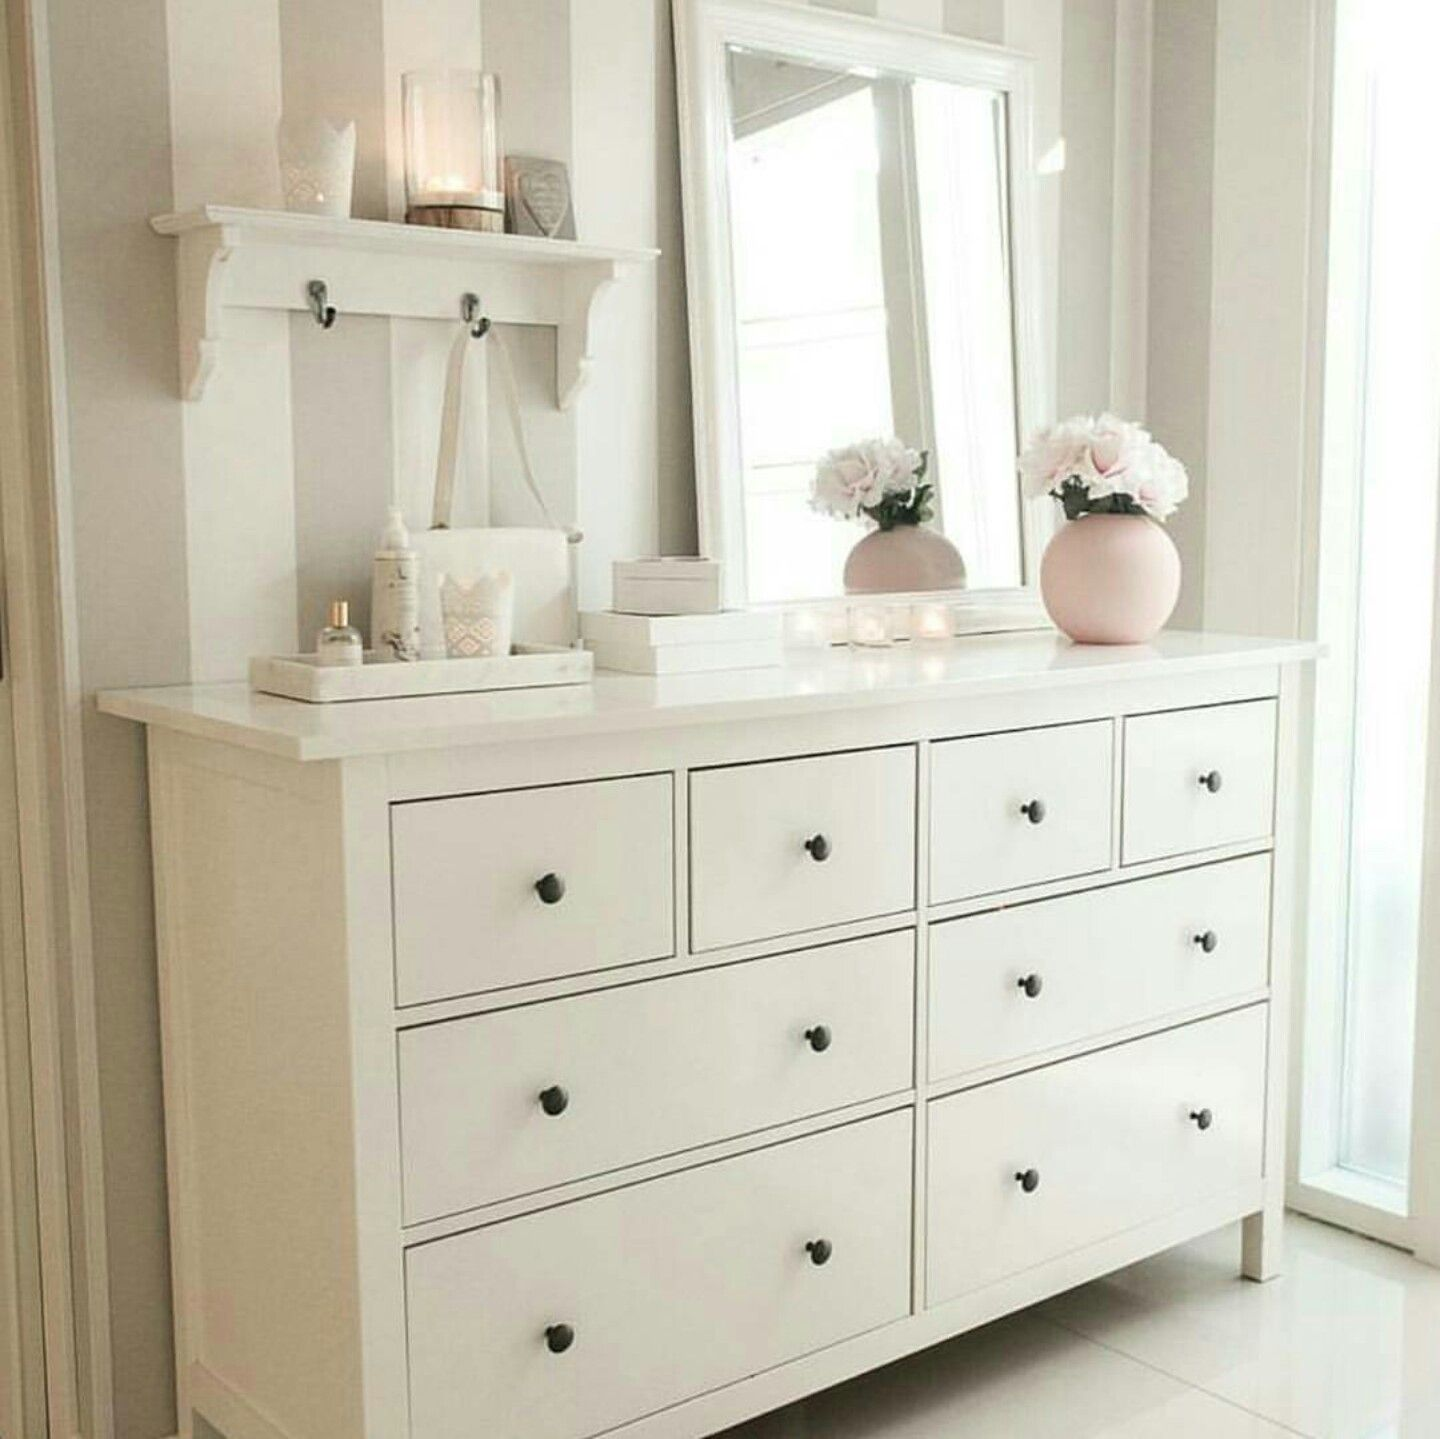 Ikea schlafzimmer hemnes  Pin by najd on أثاث وديكور   Pinterest   Bedrooms, Decoration and ...